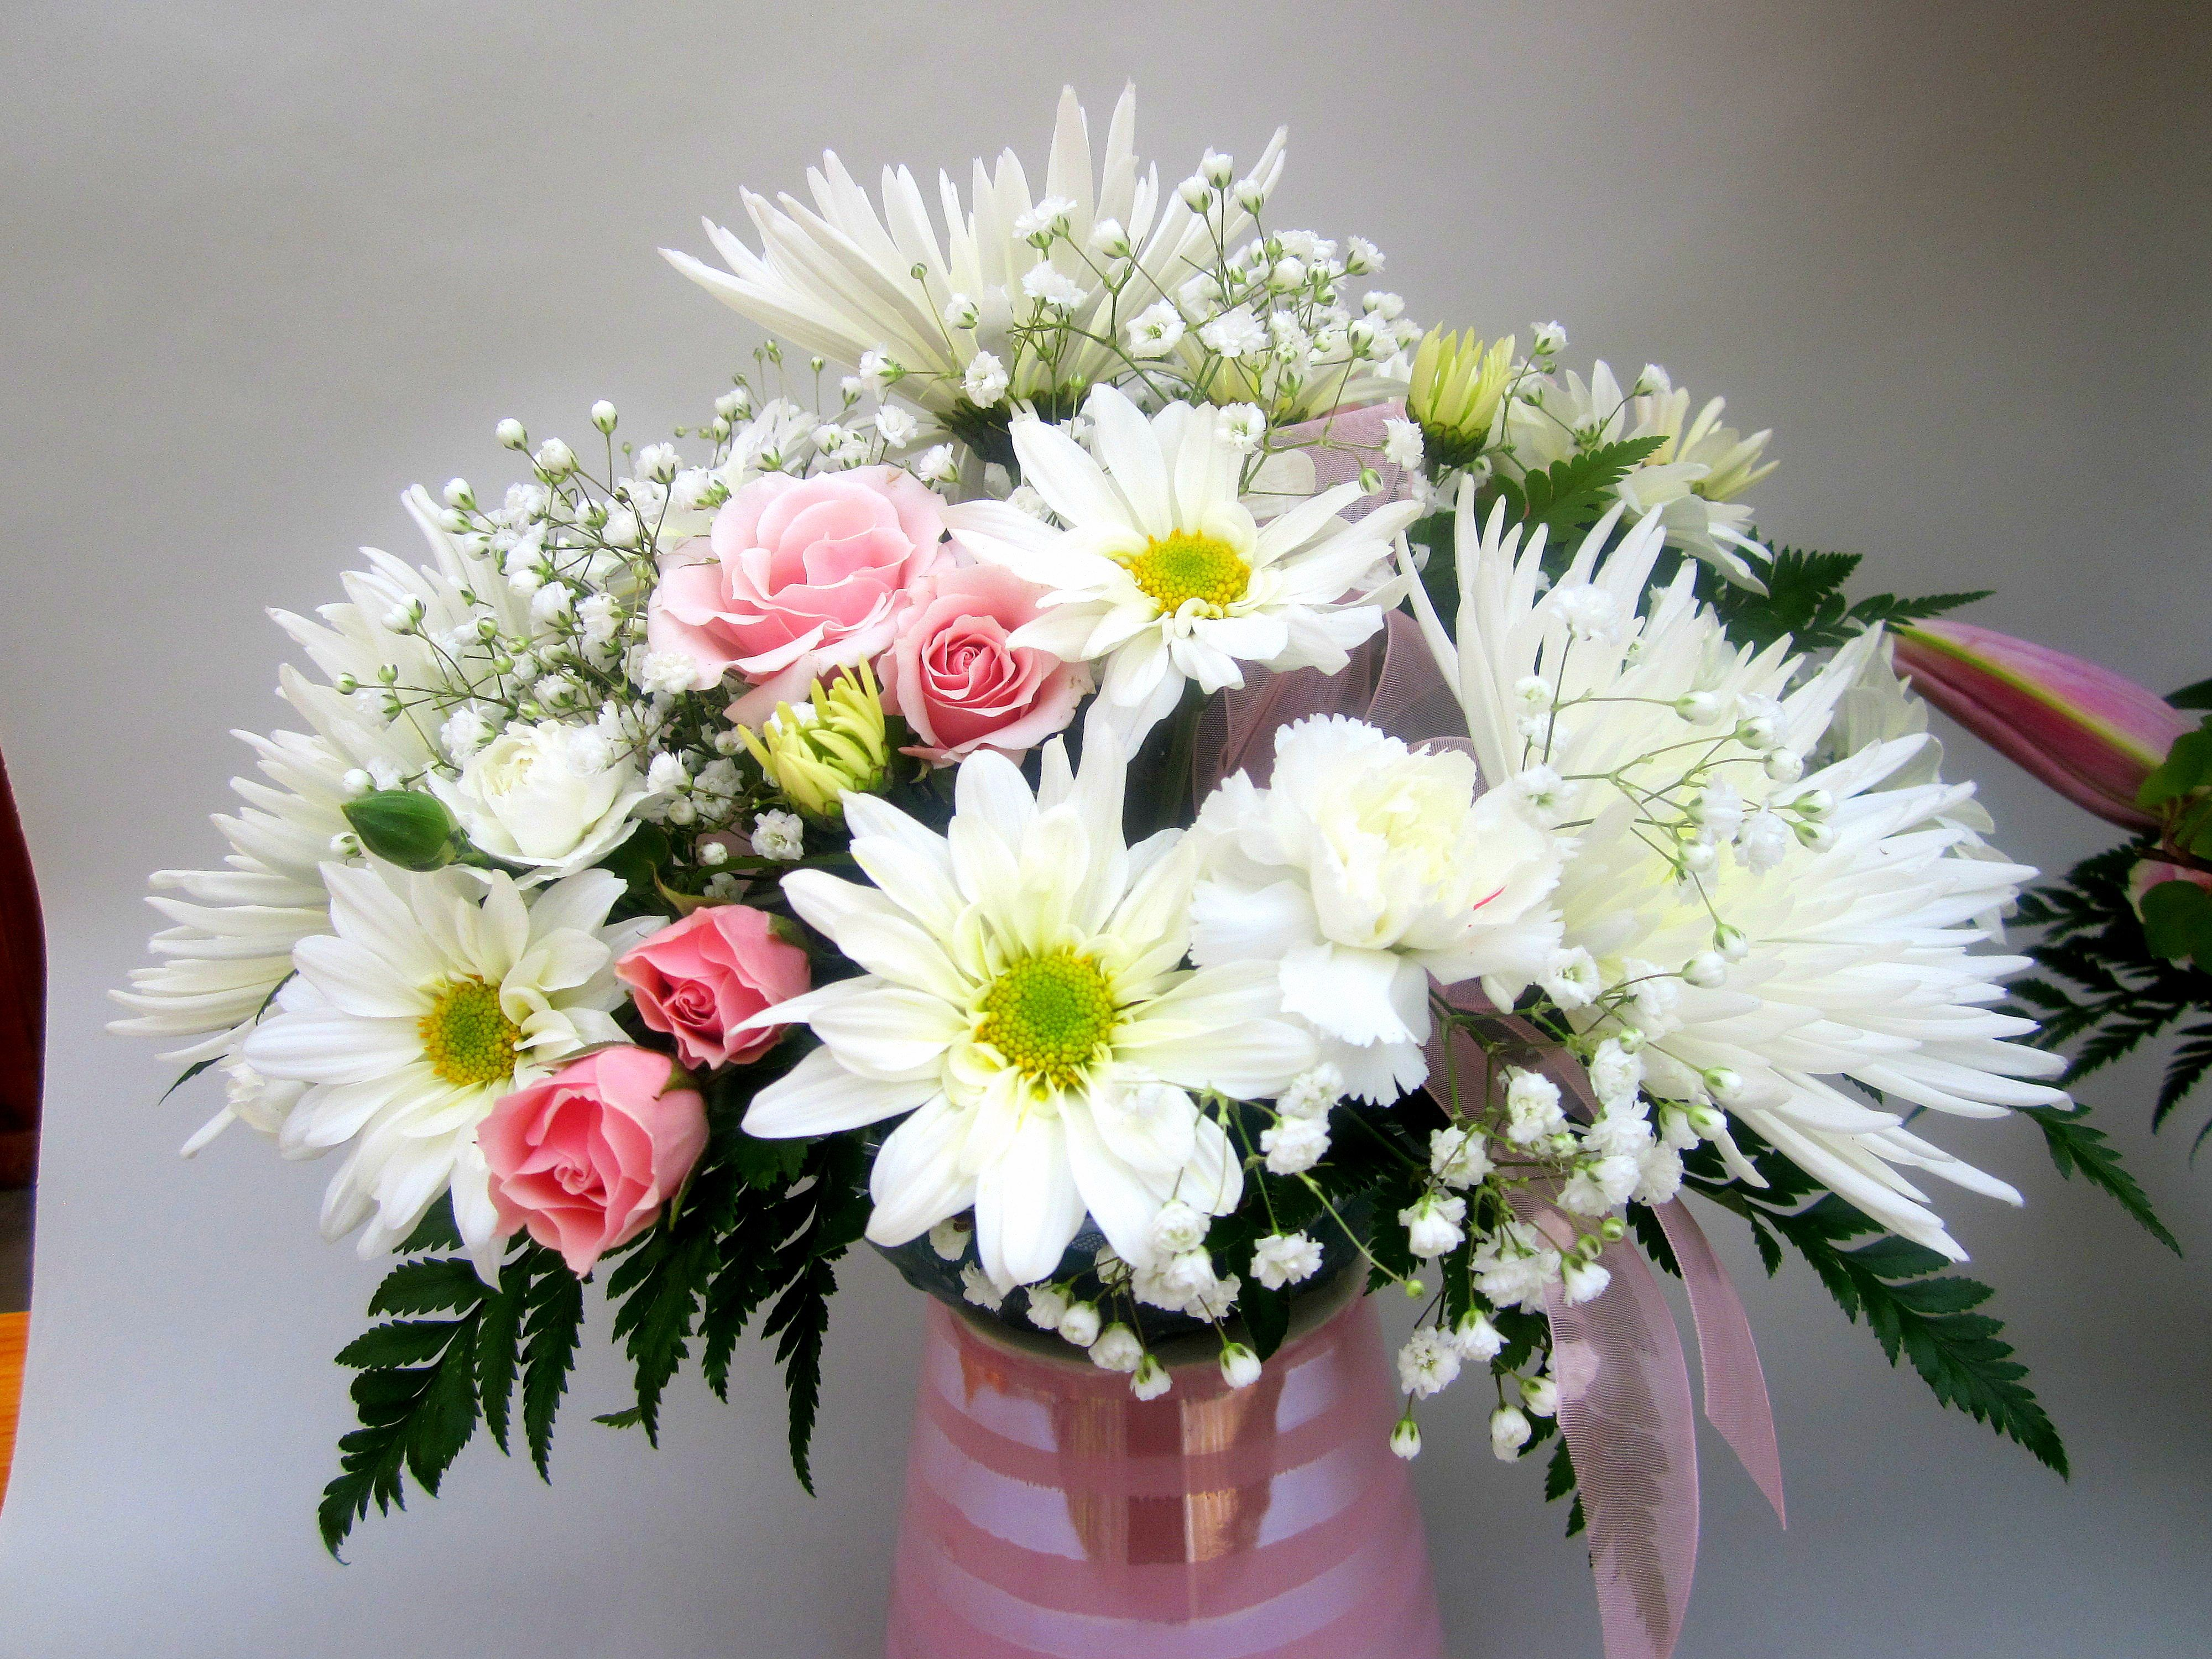 Petite Table Arrangement With White Spider Mums White Daisies And Pink Spray Roses Spray Roses Spider Mums Daisy